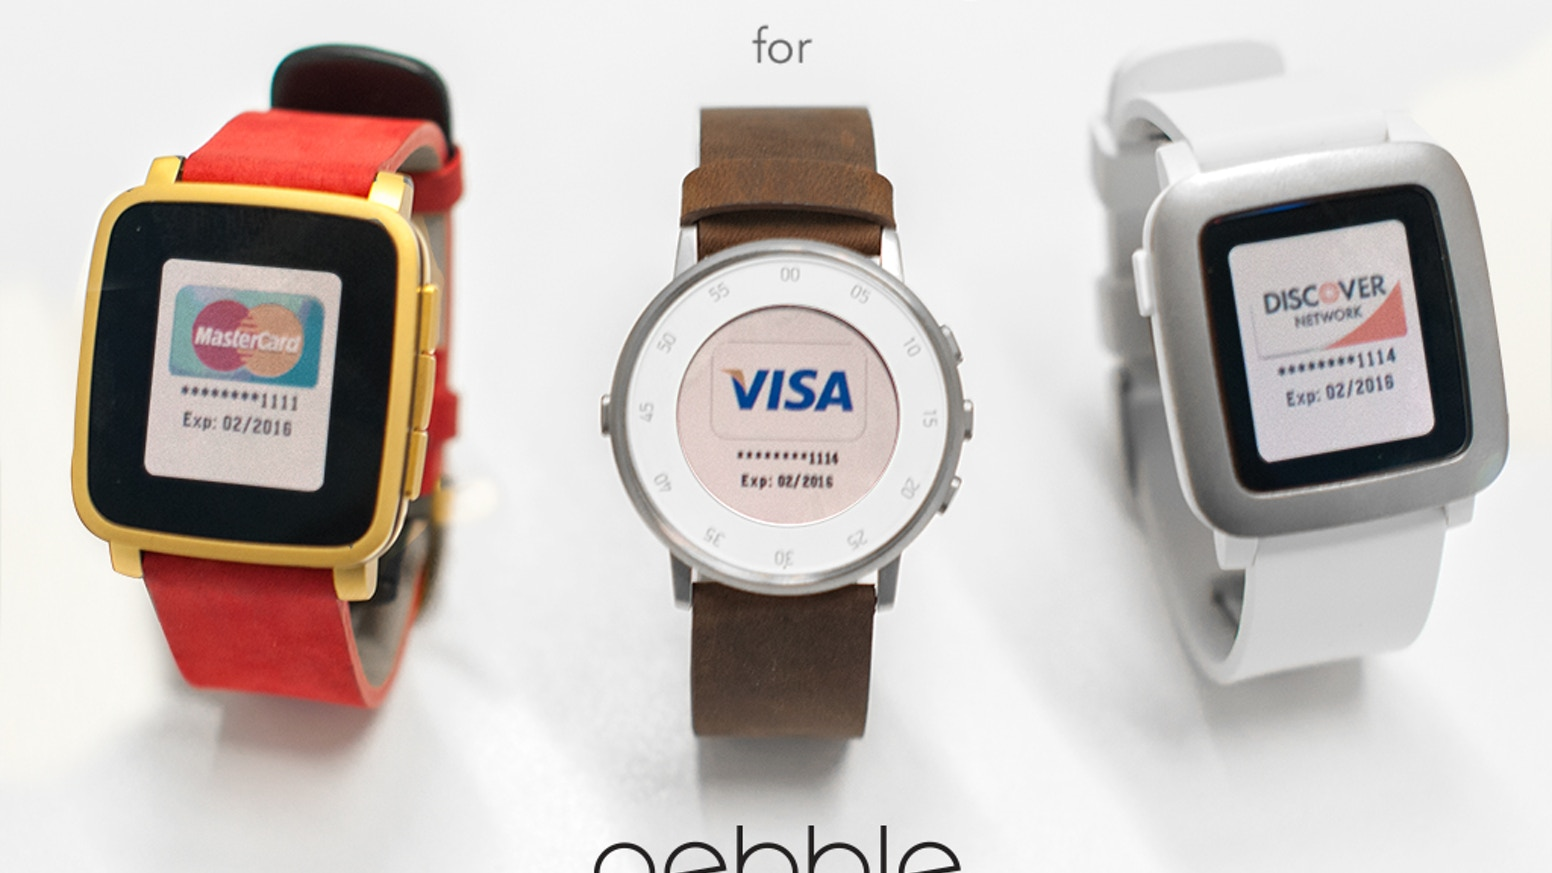 The coolest, easiest way to pay at millions of retailers using your Pebble smartwatch. Leave the phone behind. Just tap and go!